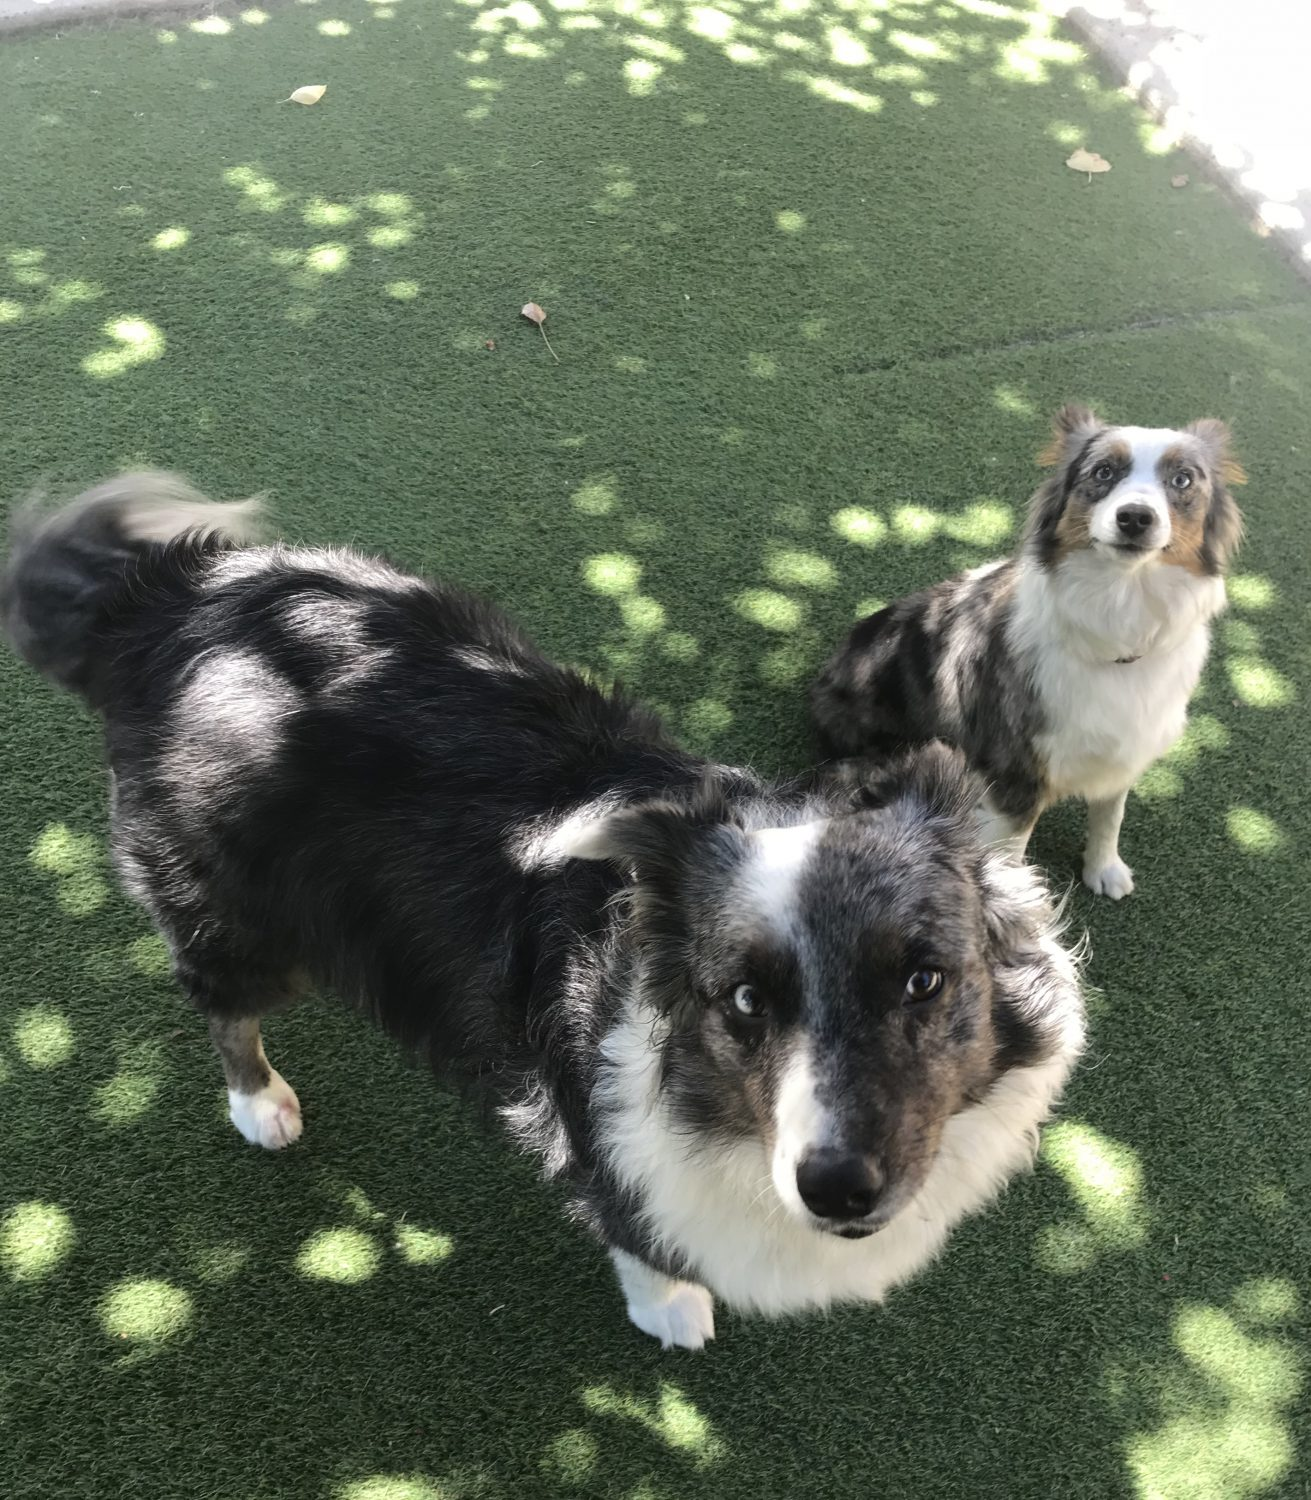 Two dogs waiting for a command